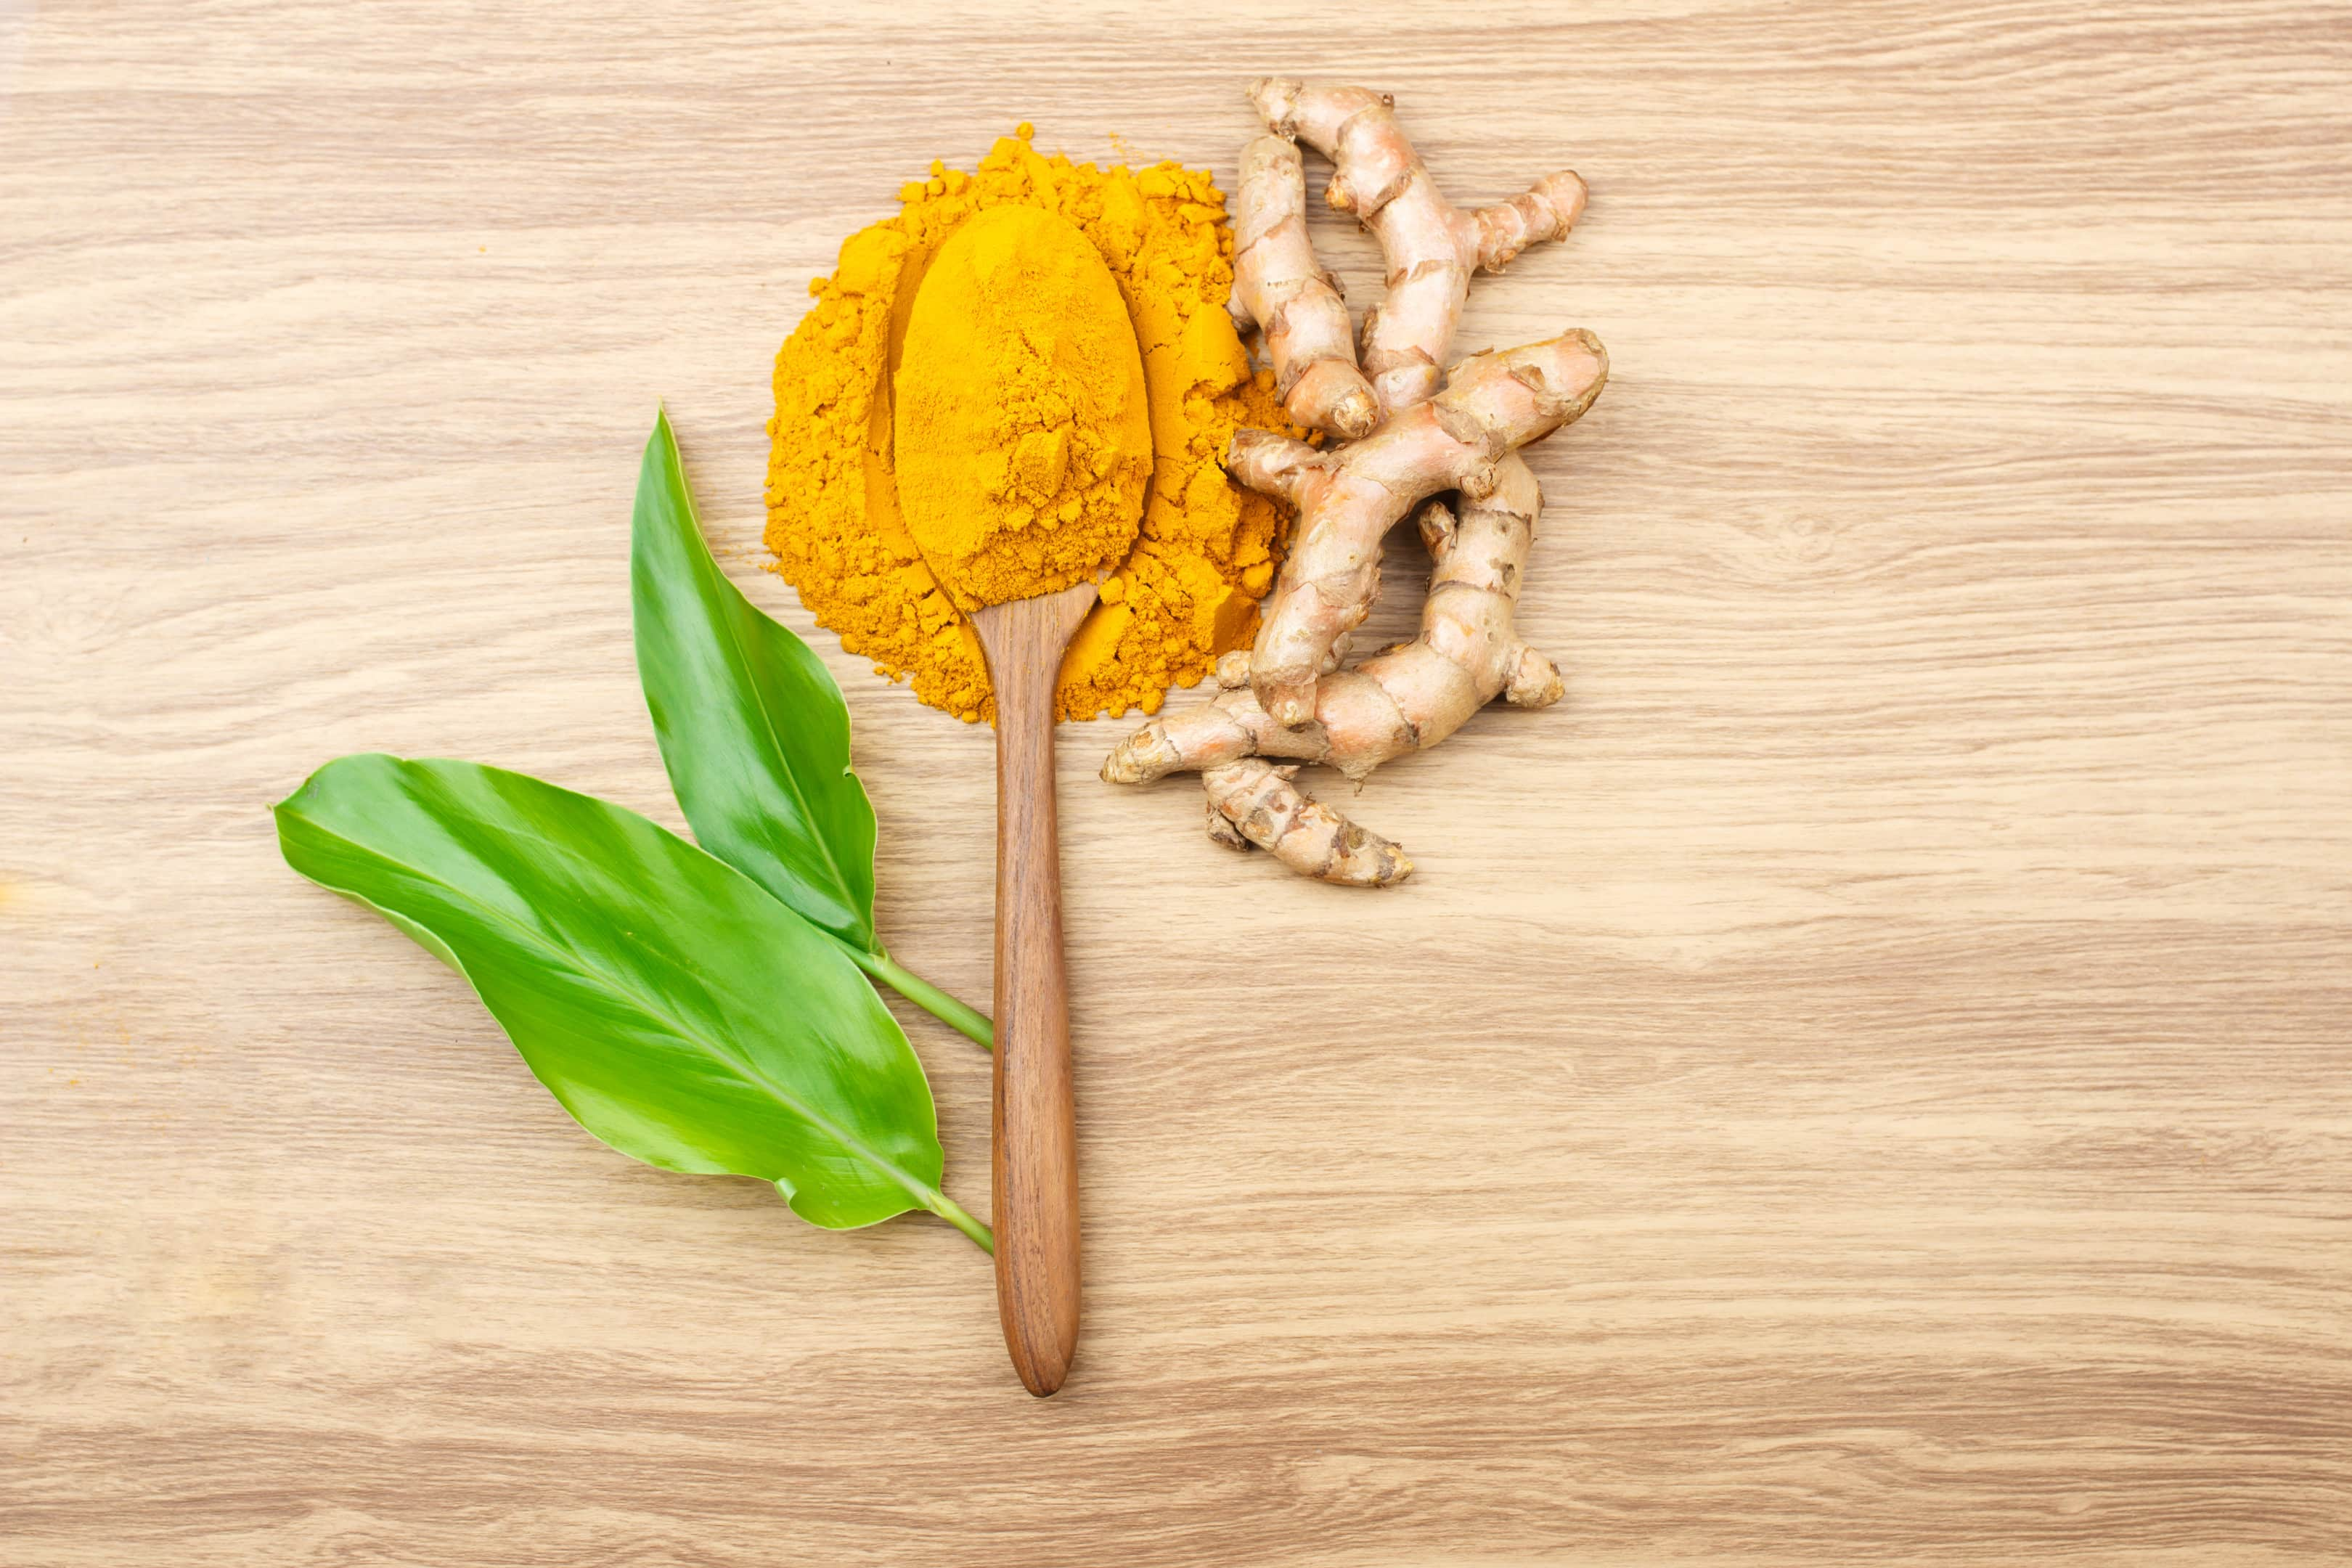 Turmeric root and powder on wooden table